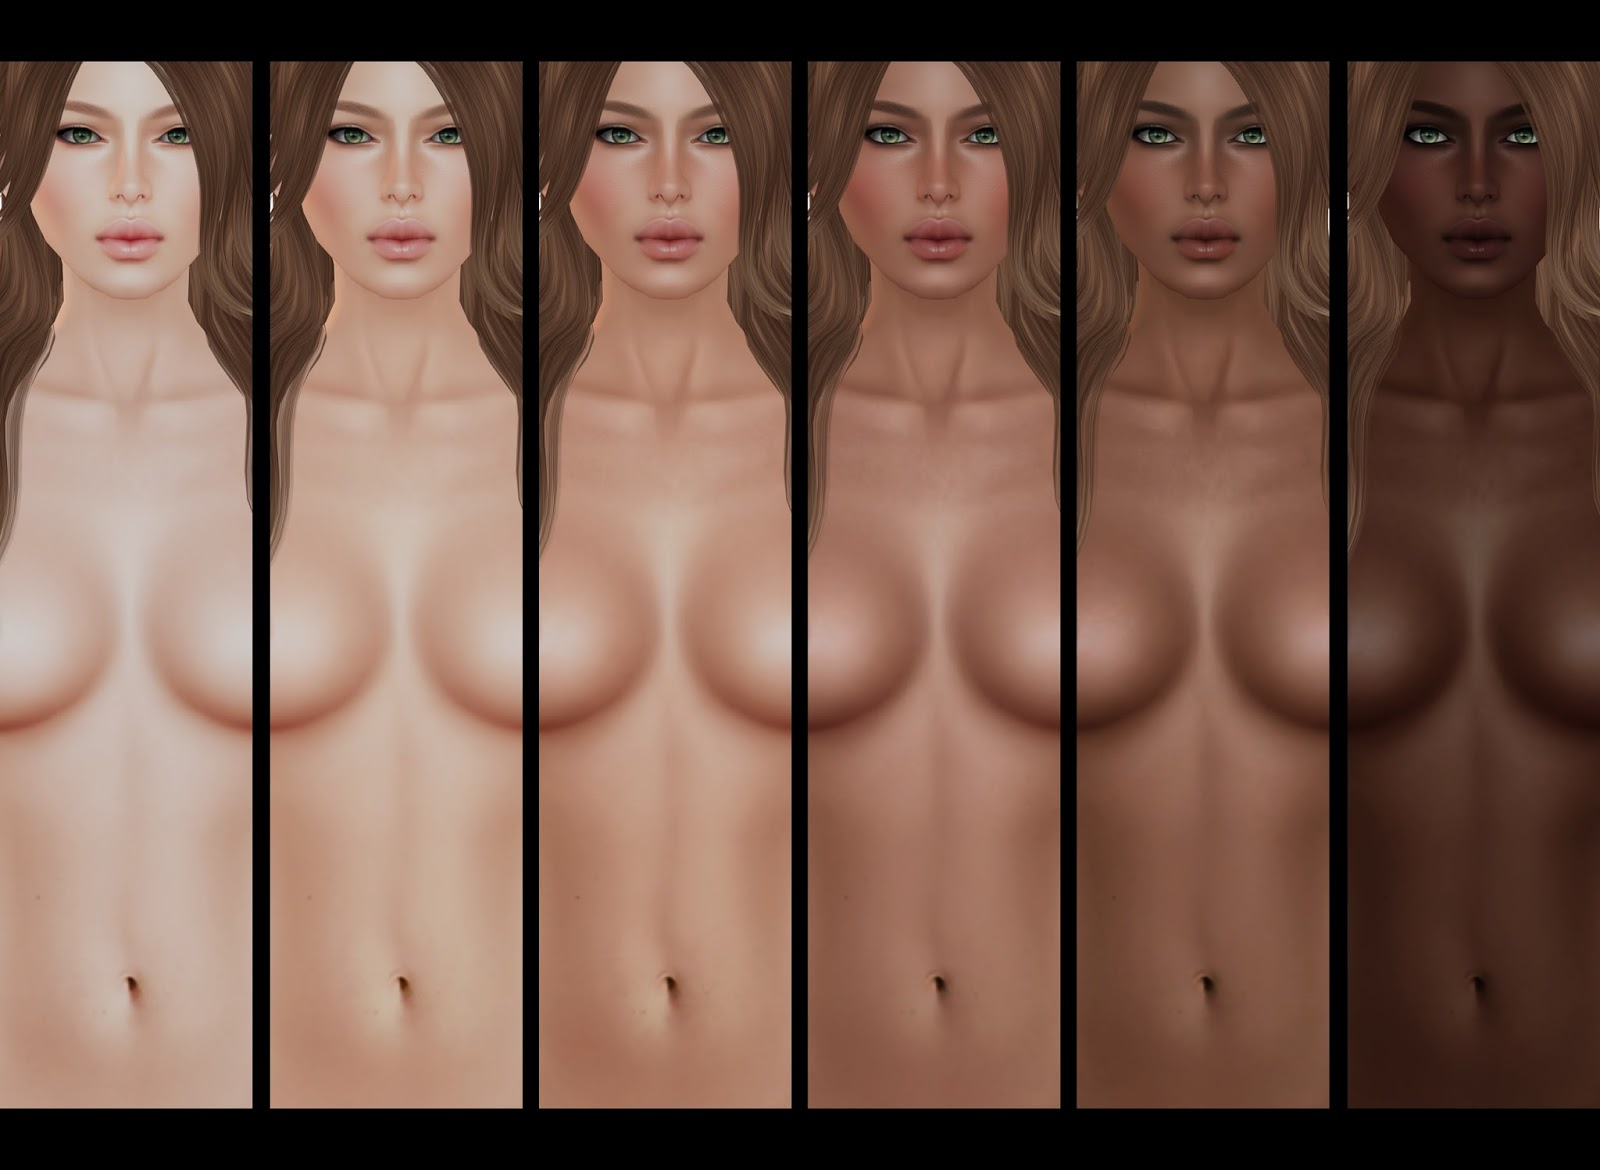 The sims 2 nude skins download cartoon thumbs